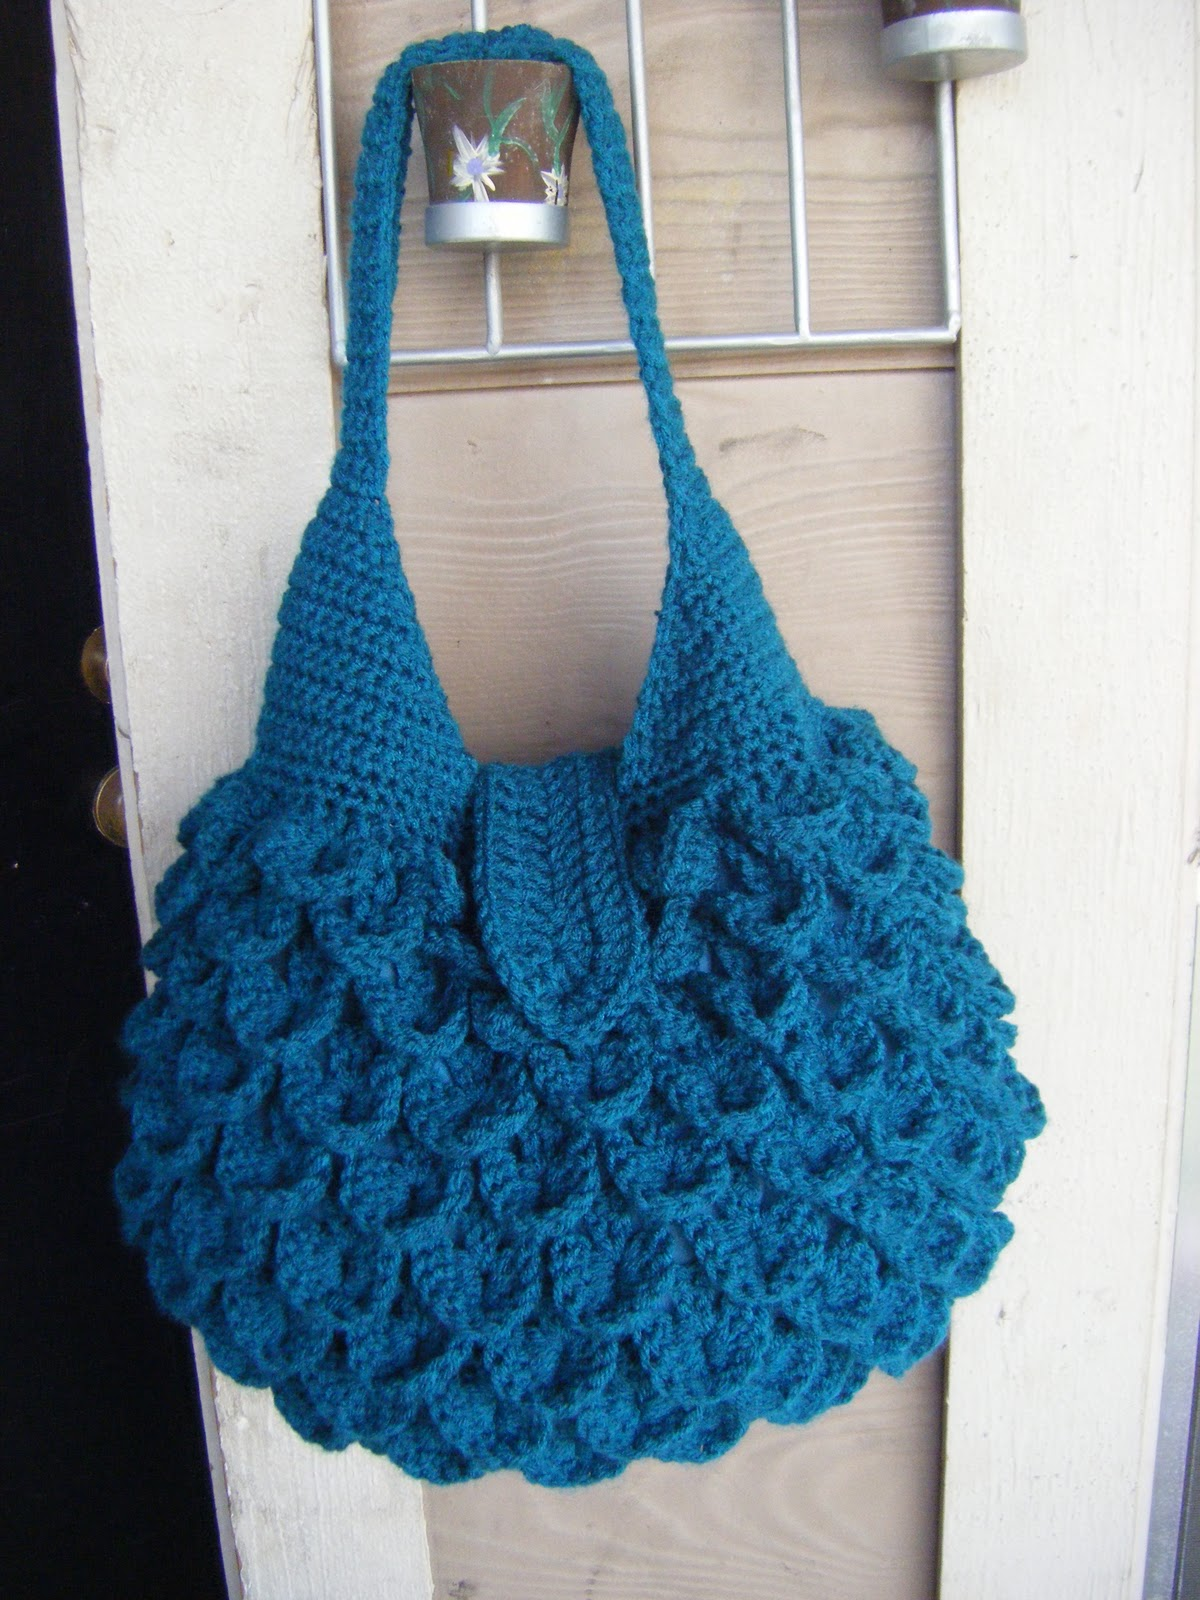 Free Crochet Patterns For Bags : Best Patterns: Crocodile Crochet Bag PATTERN